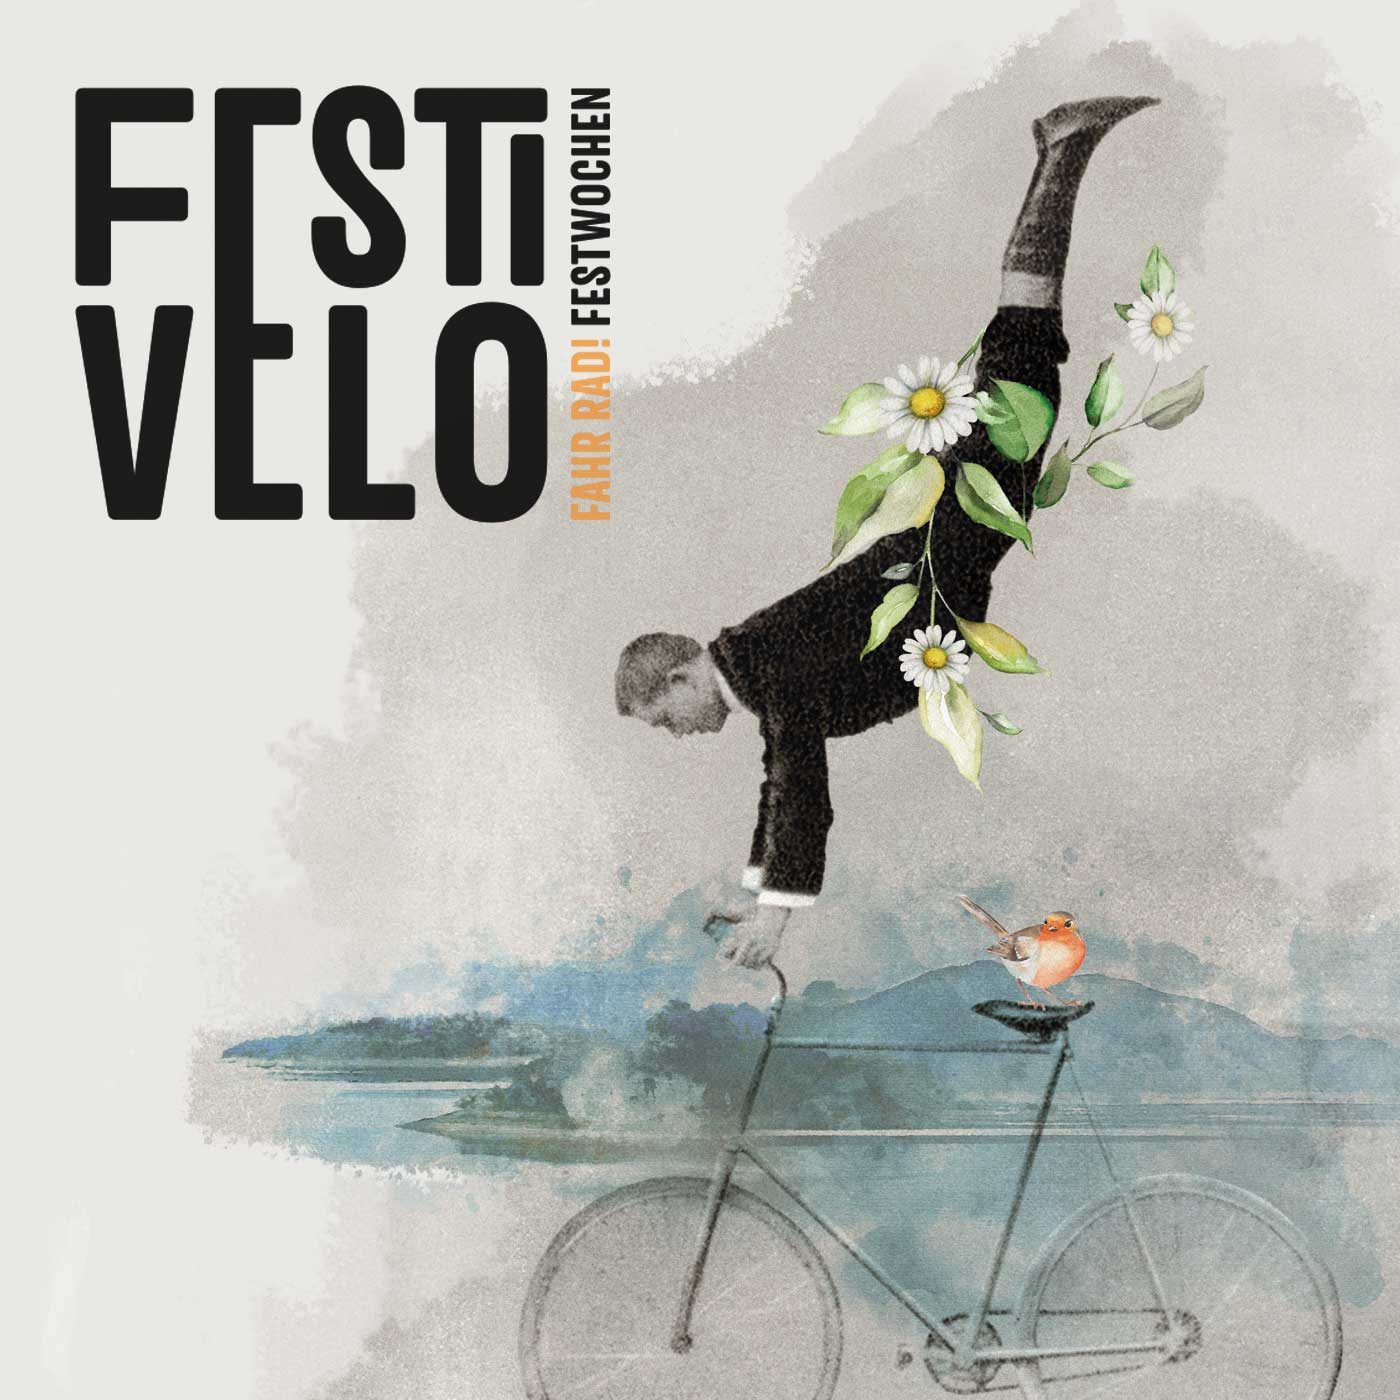 Festivelo Eventdesign